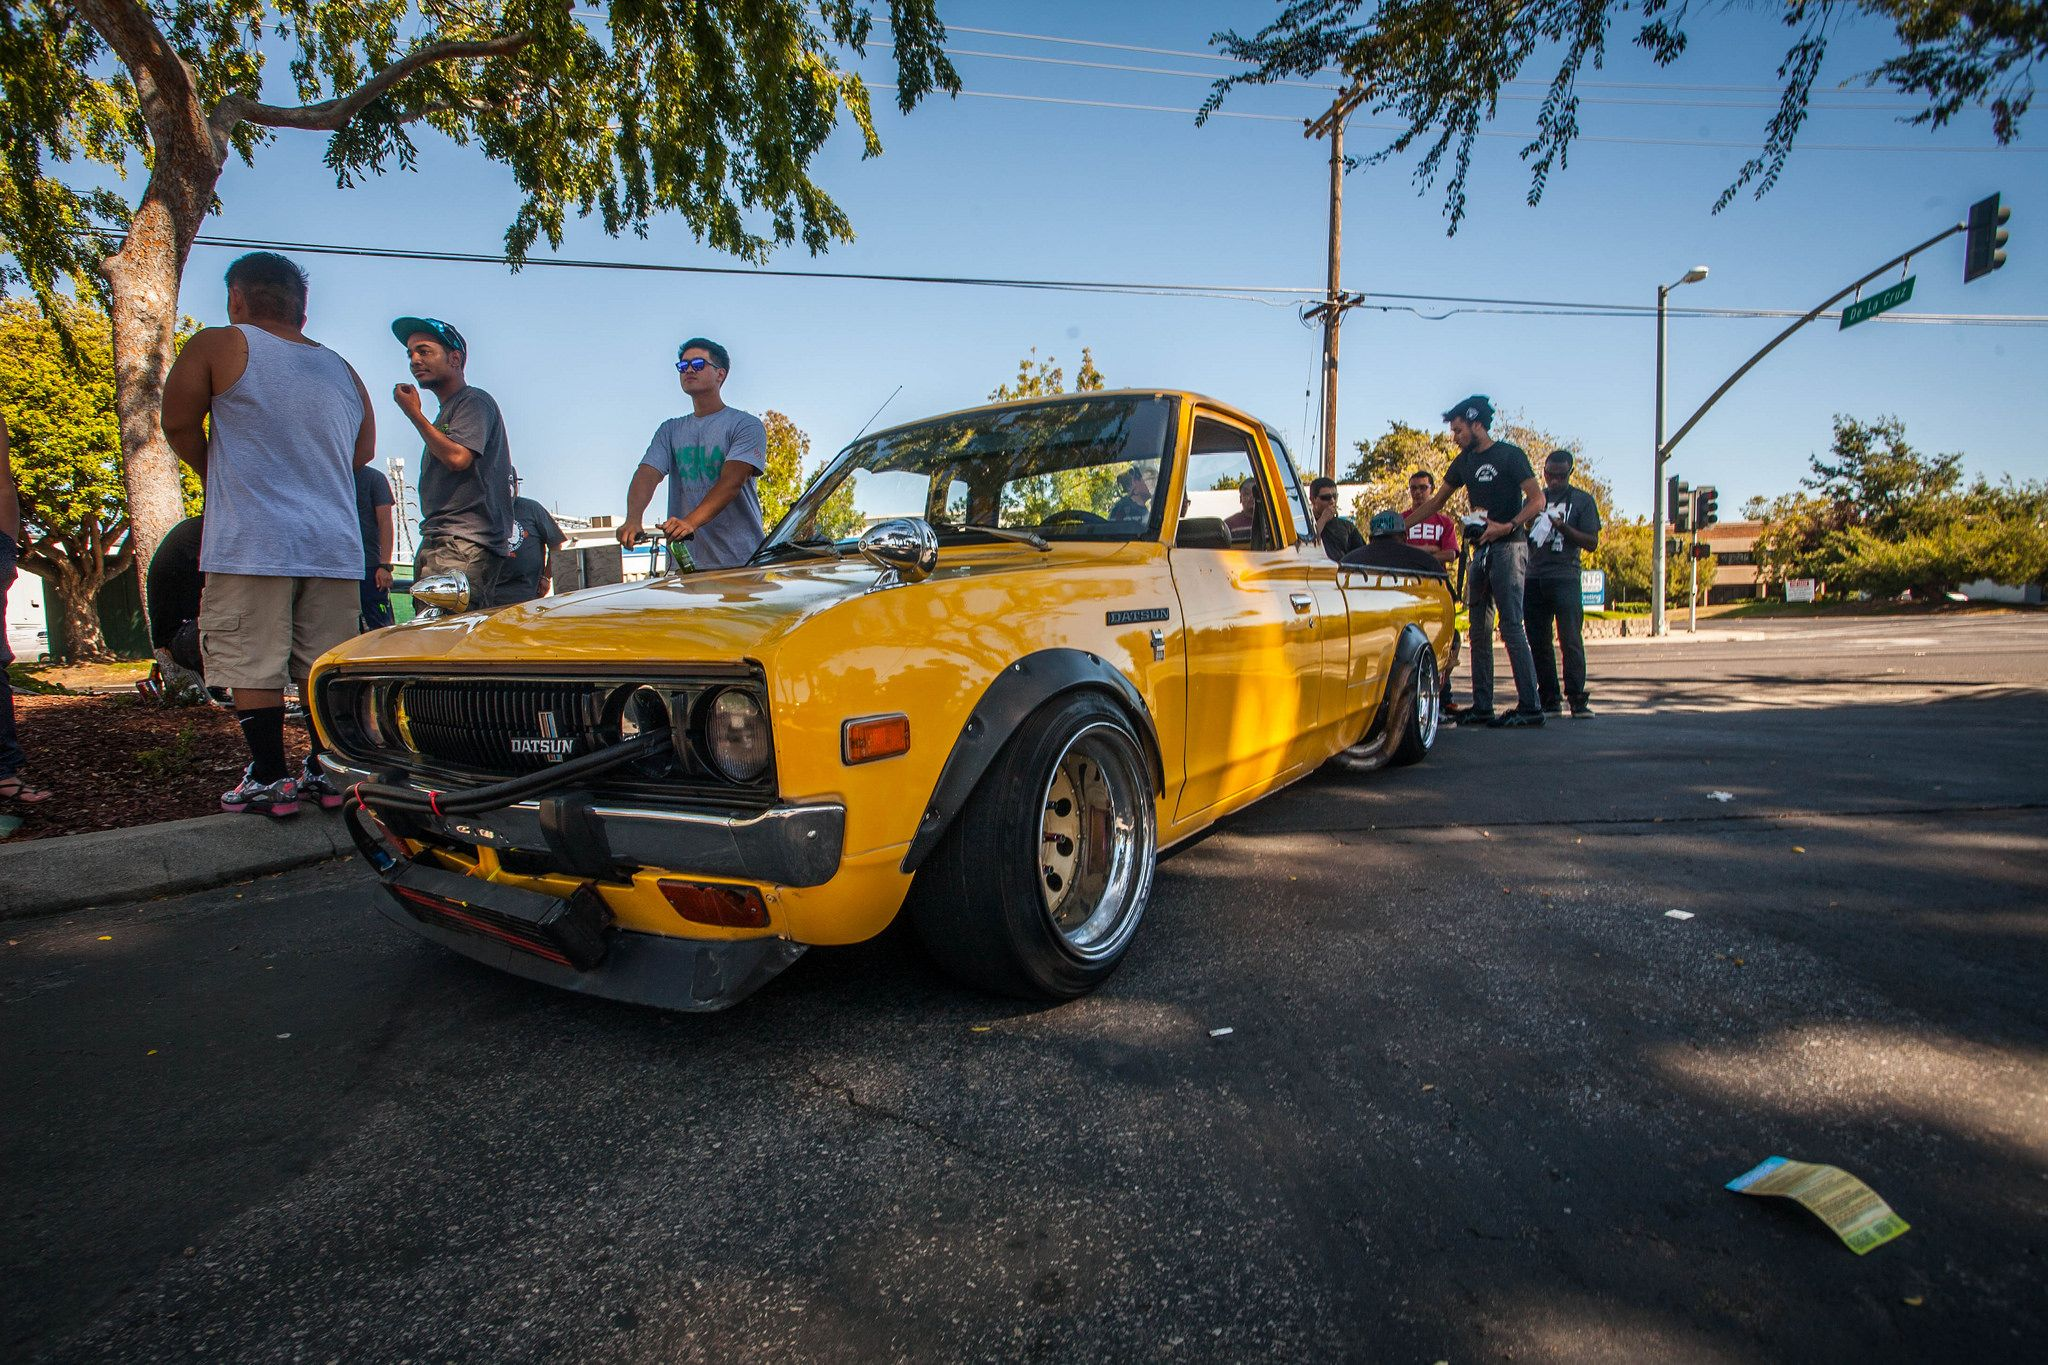 Nissan datsun 510 truck - I Just Picked Up A Set Of 15x10 Inch Steelies That Ll Look Almost Identical